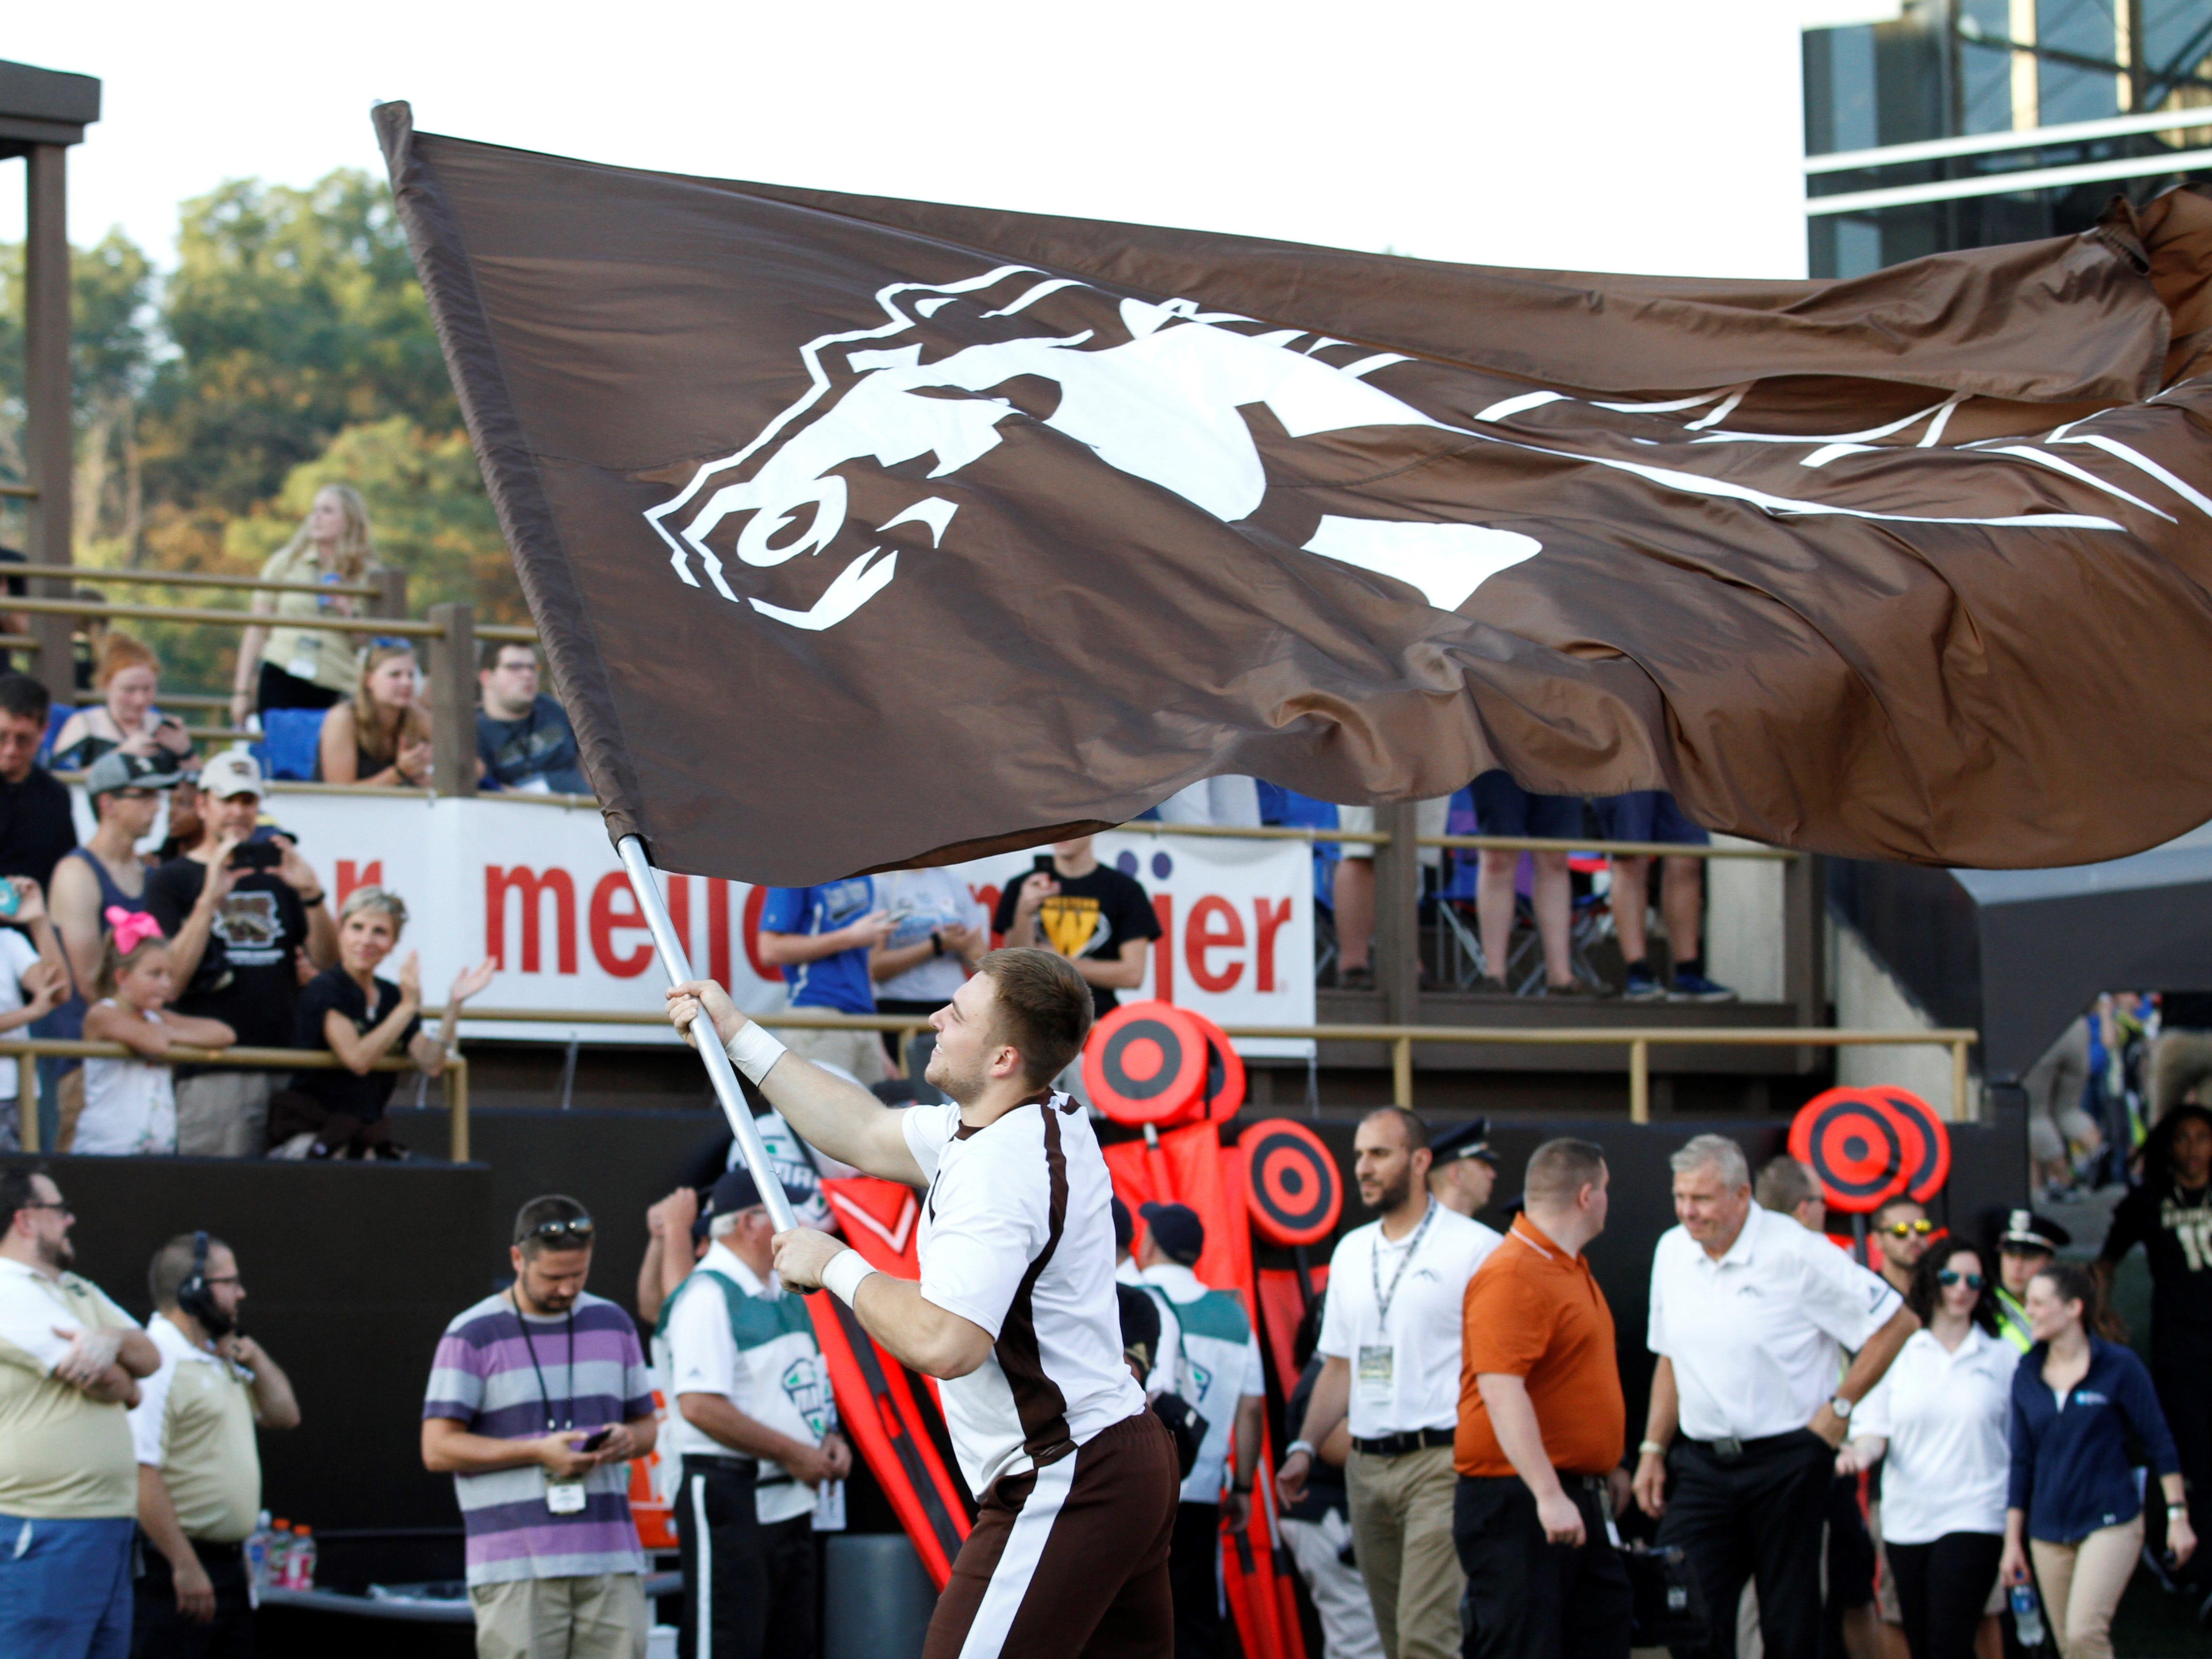 Western Michigan football: What we learned vs. Northern Illinois